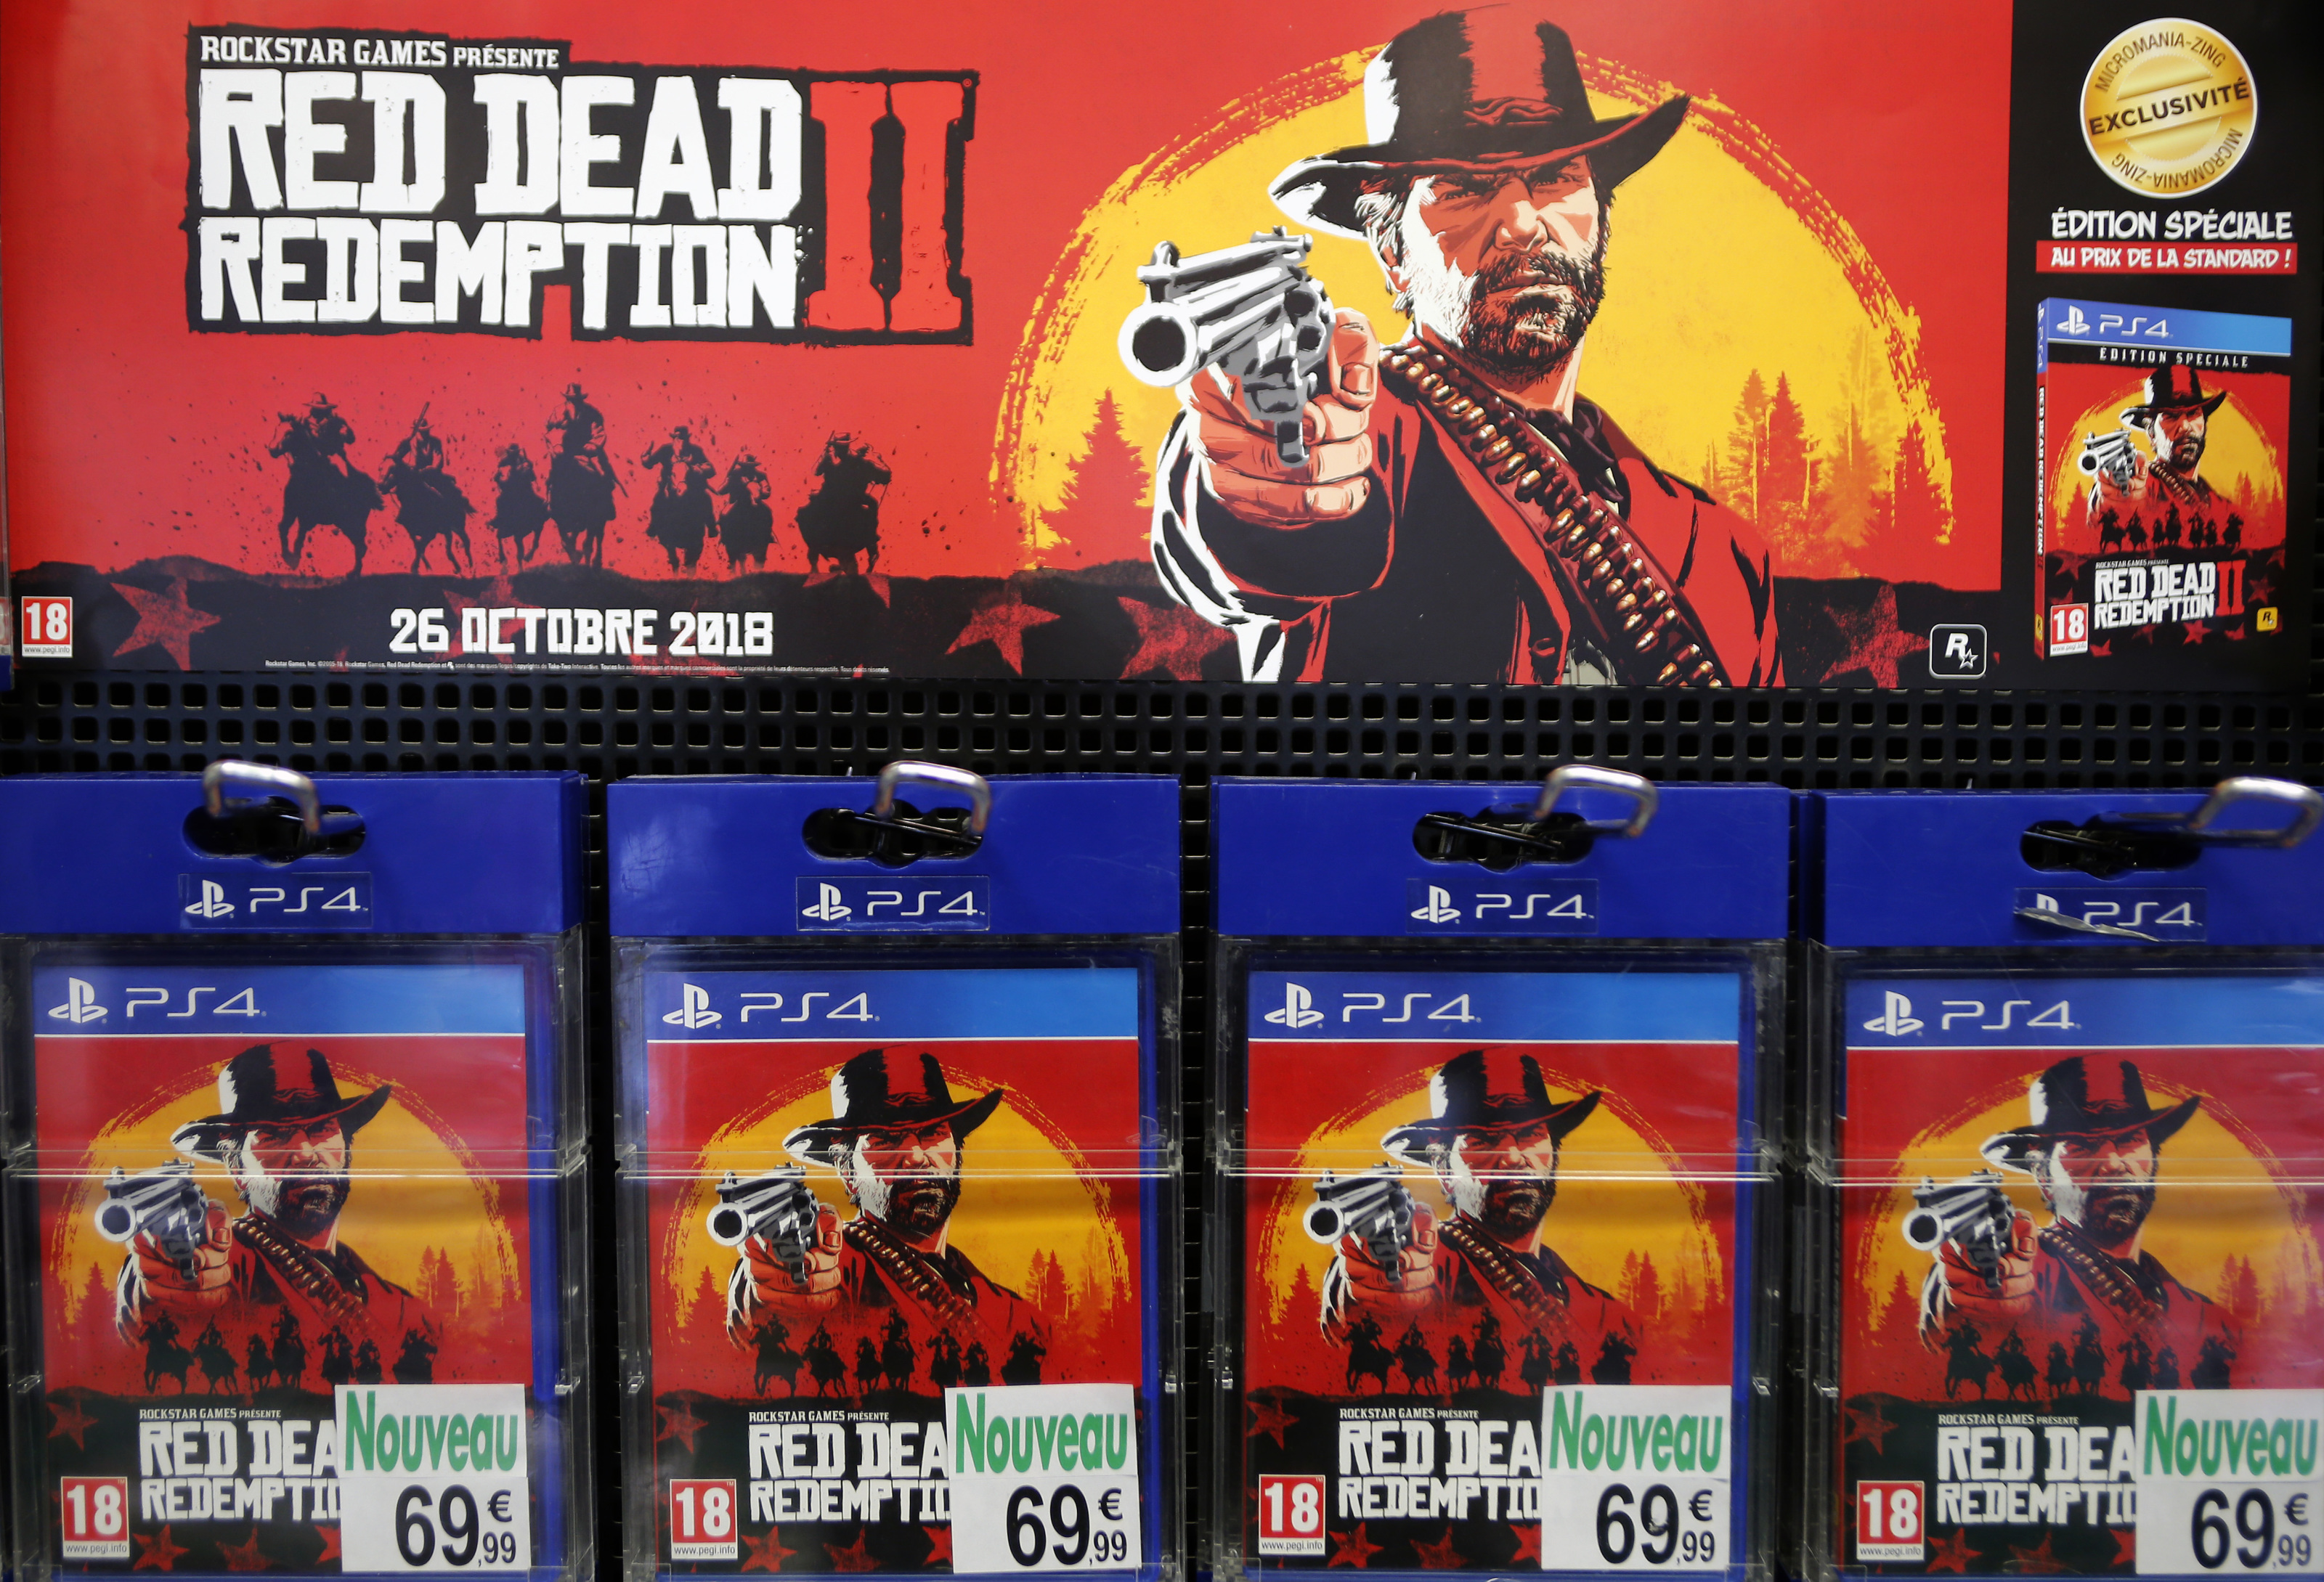 Red Dead Redemption 2 gets naughty with GTA-inspired Hot Coffee mod